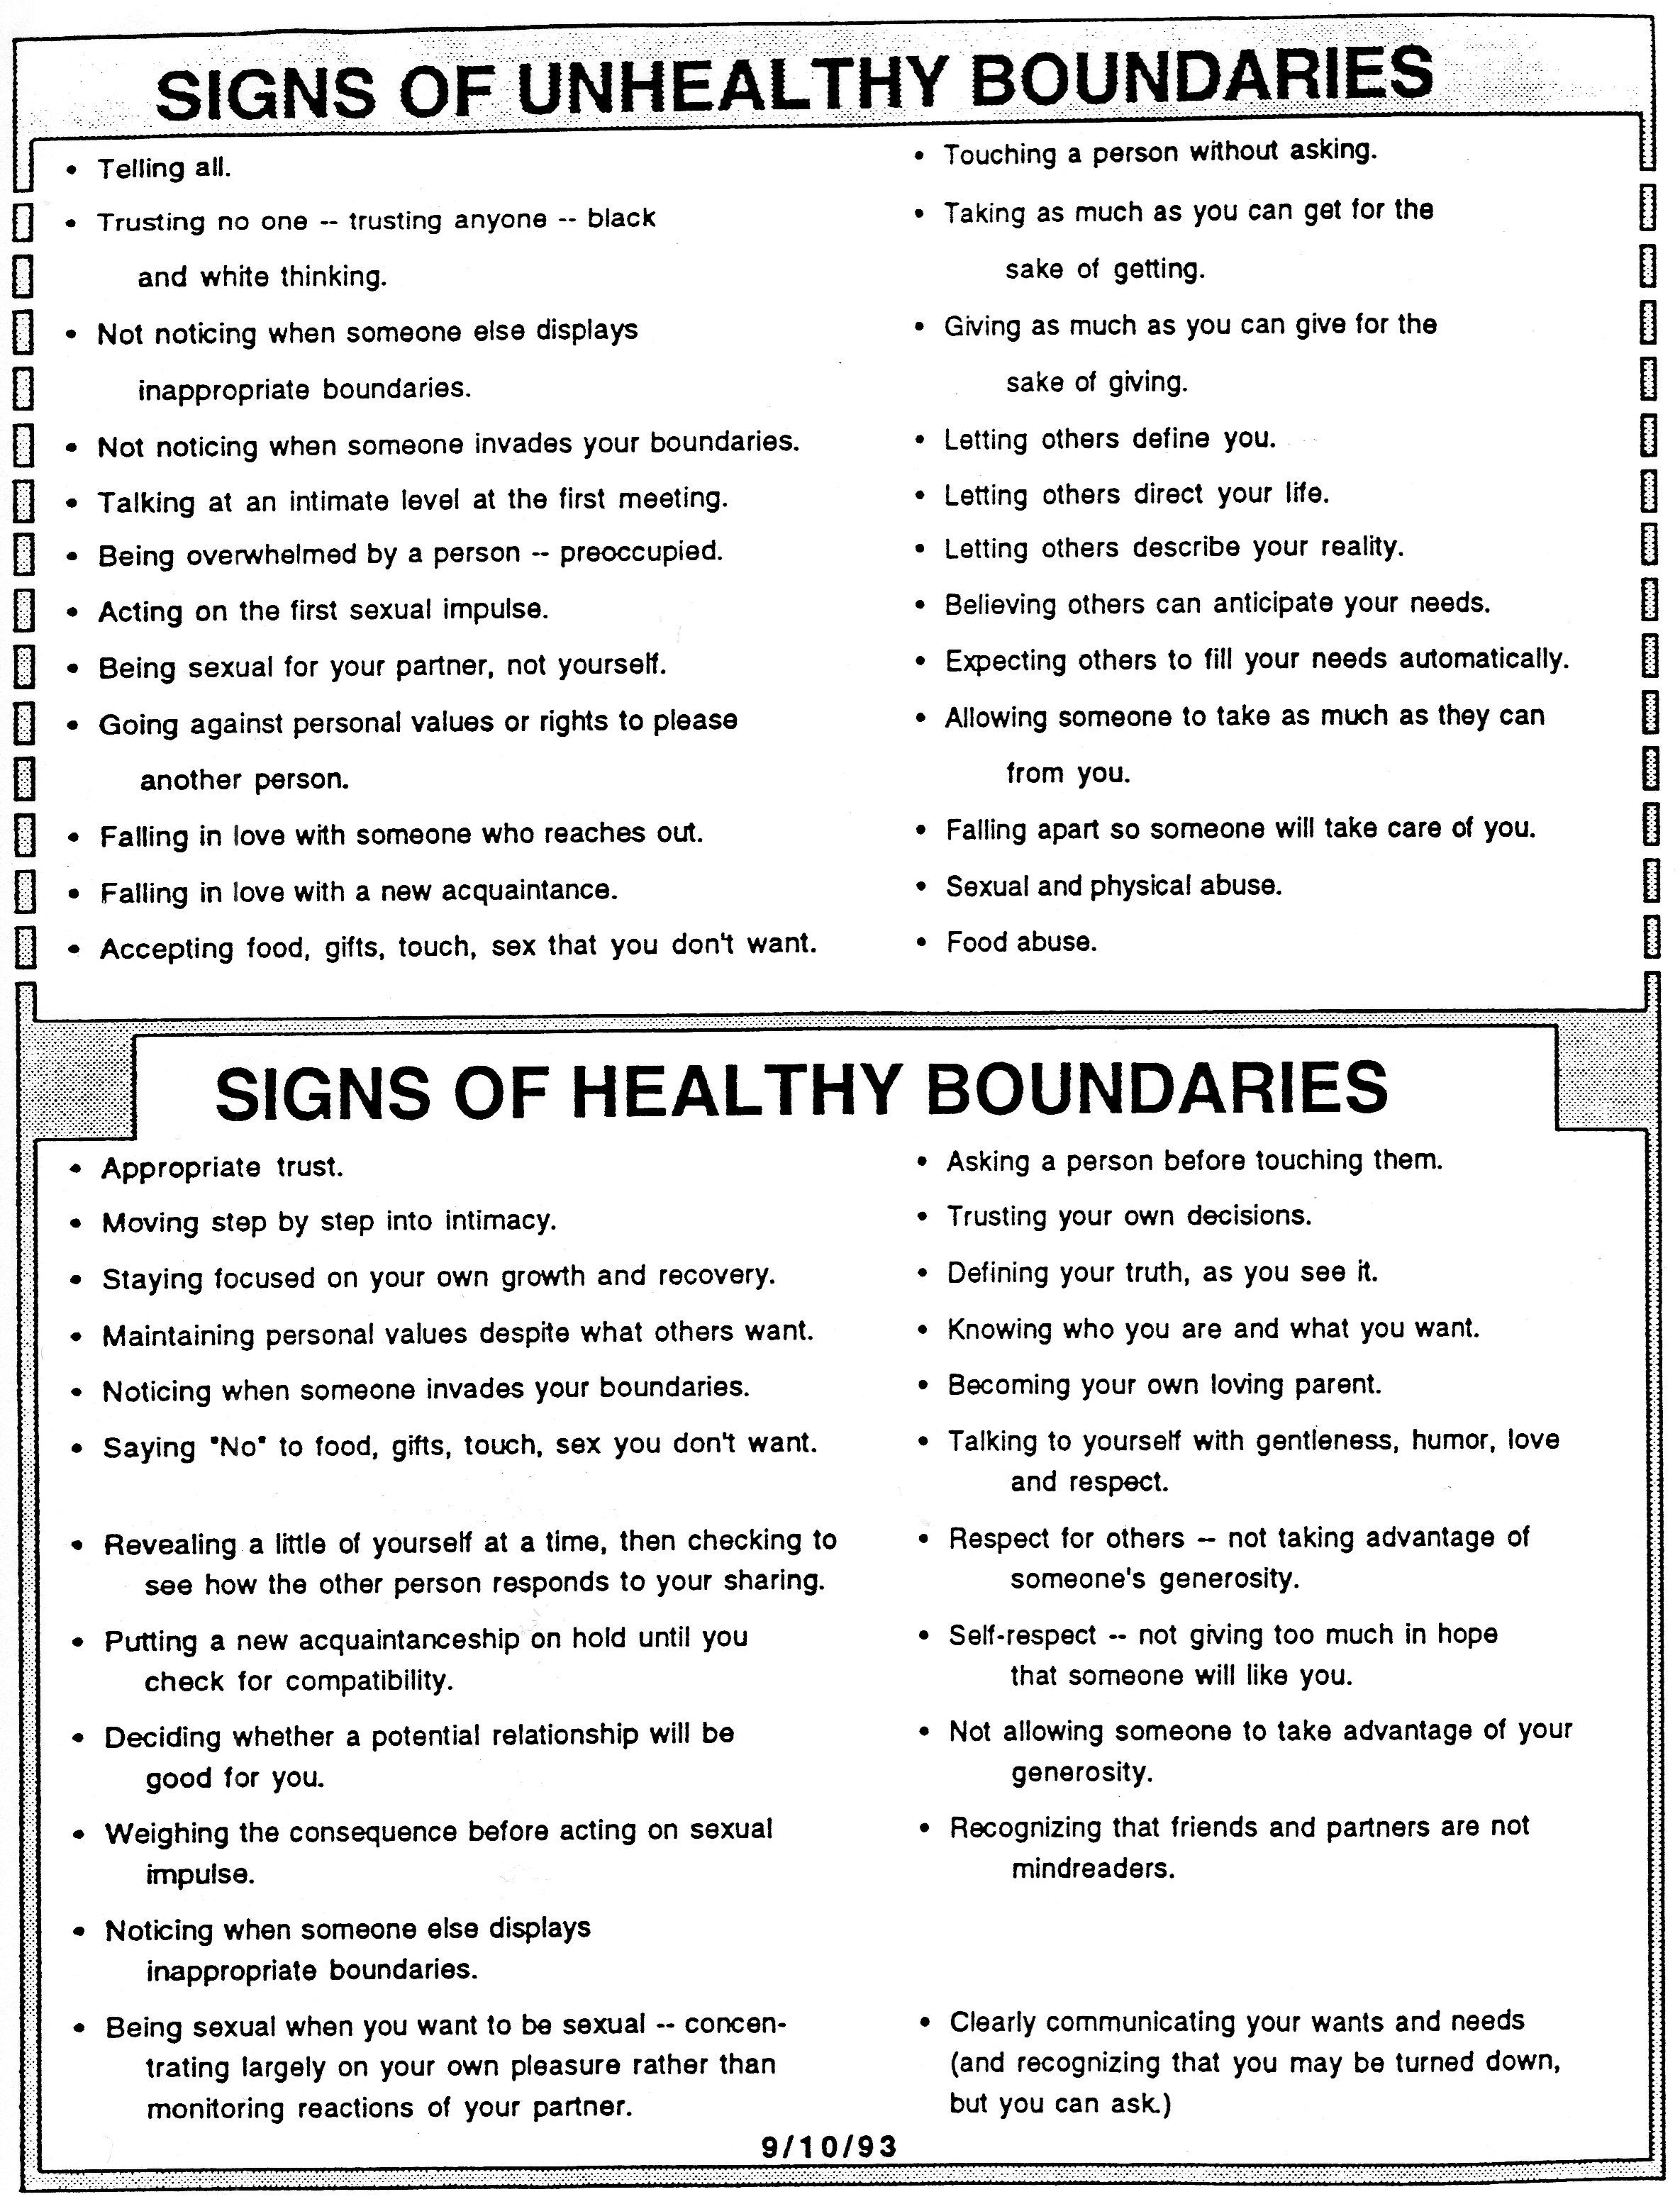 Characteristics Of Unhealthy And Healthy Boundaries Becoming Your Own Loving Parent